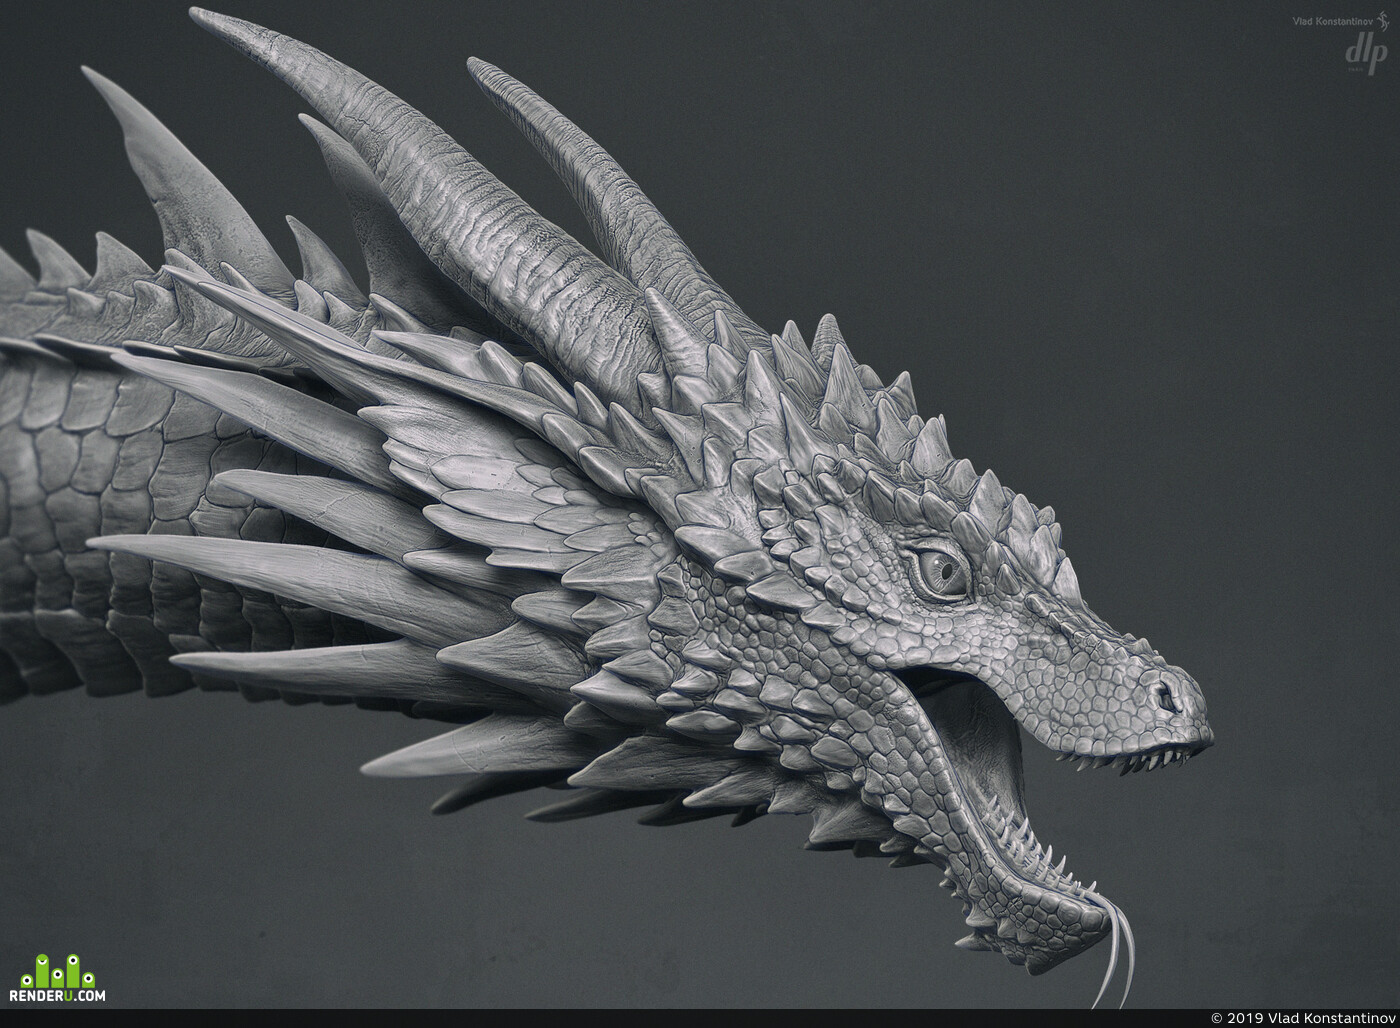 dragon, Fantasy, fantasyart, ZBrush, sculpting, creature, creature design, Character, 3D Animation, texturing